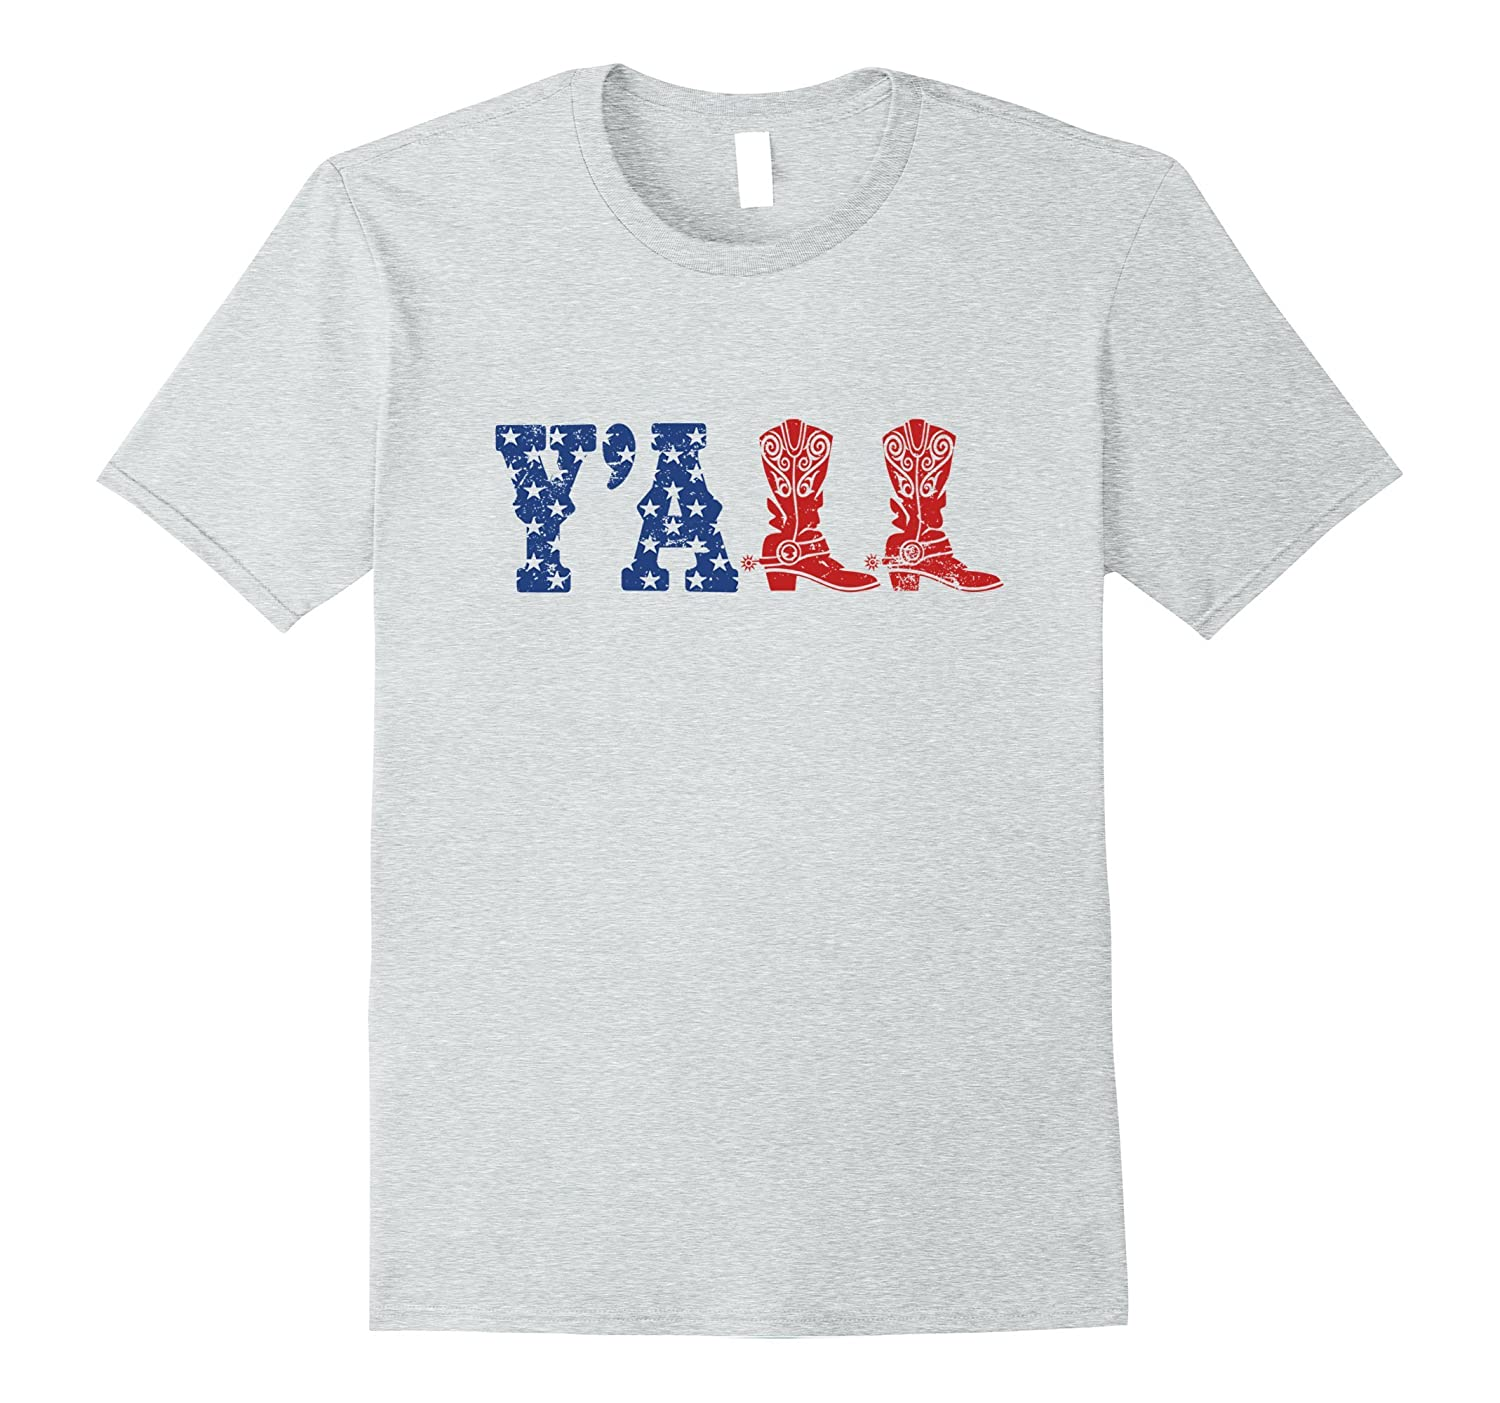 Y'ALL T-Shirt American Flag Western Country Cowgirl Tee-TH